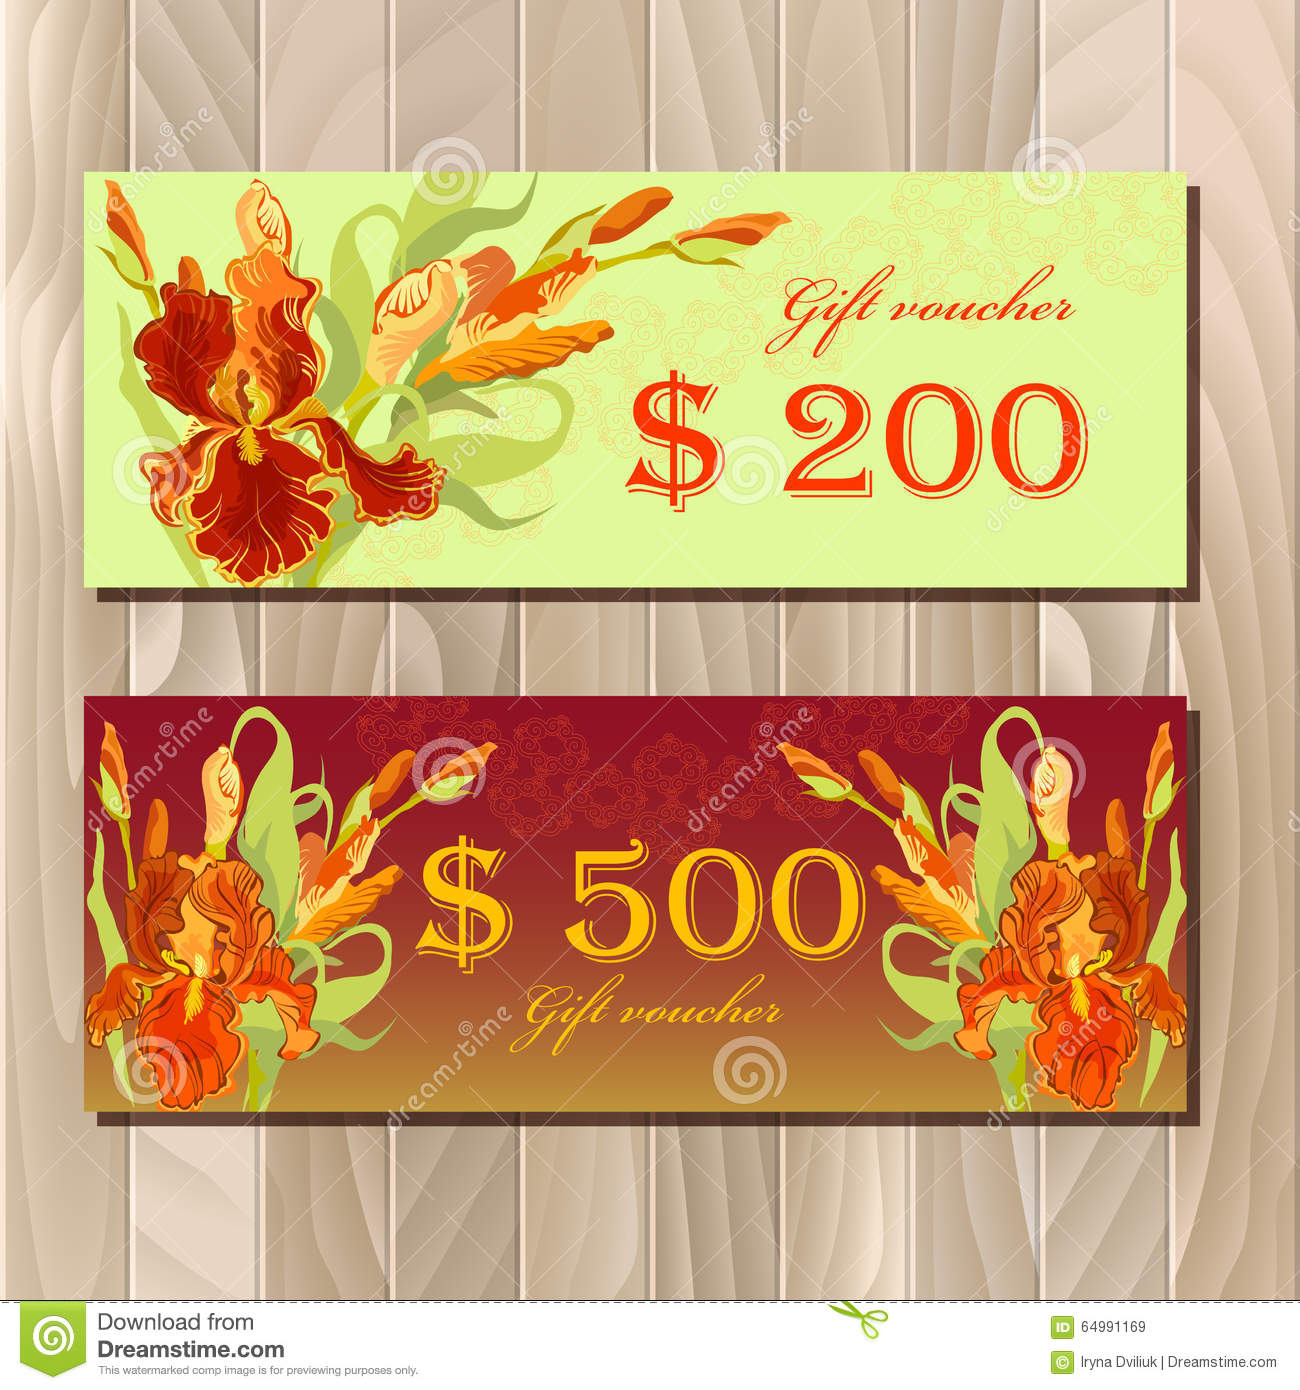 gift certificate printable card template with red iris flower design